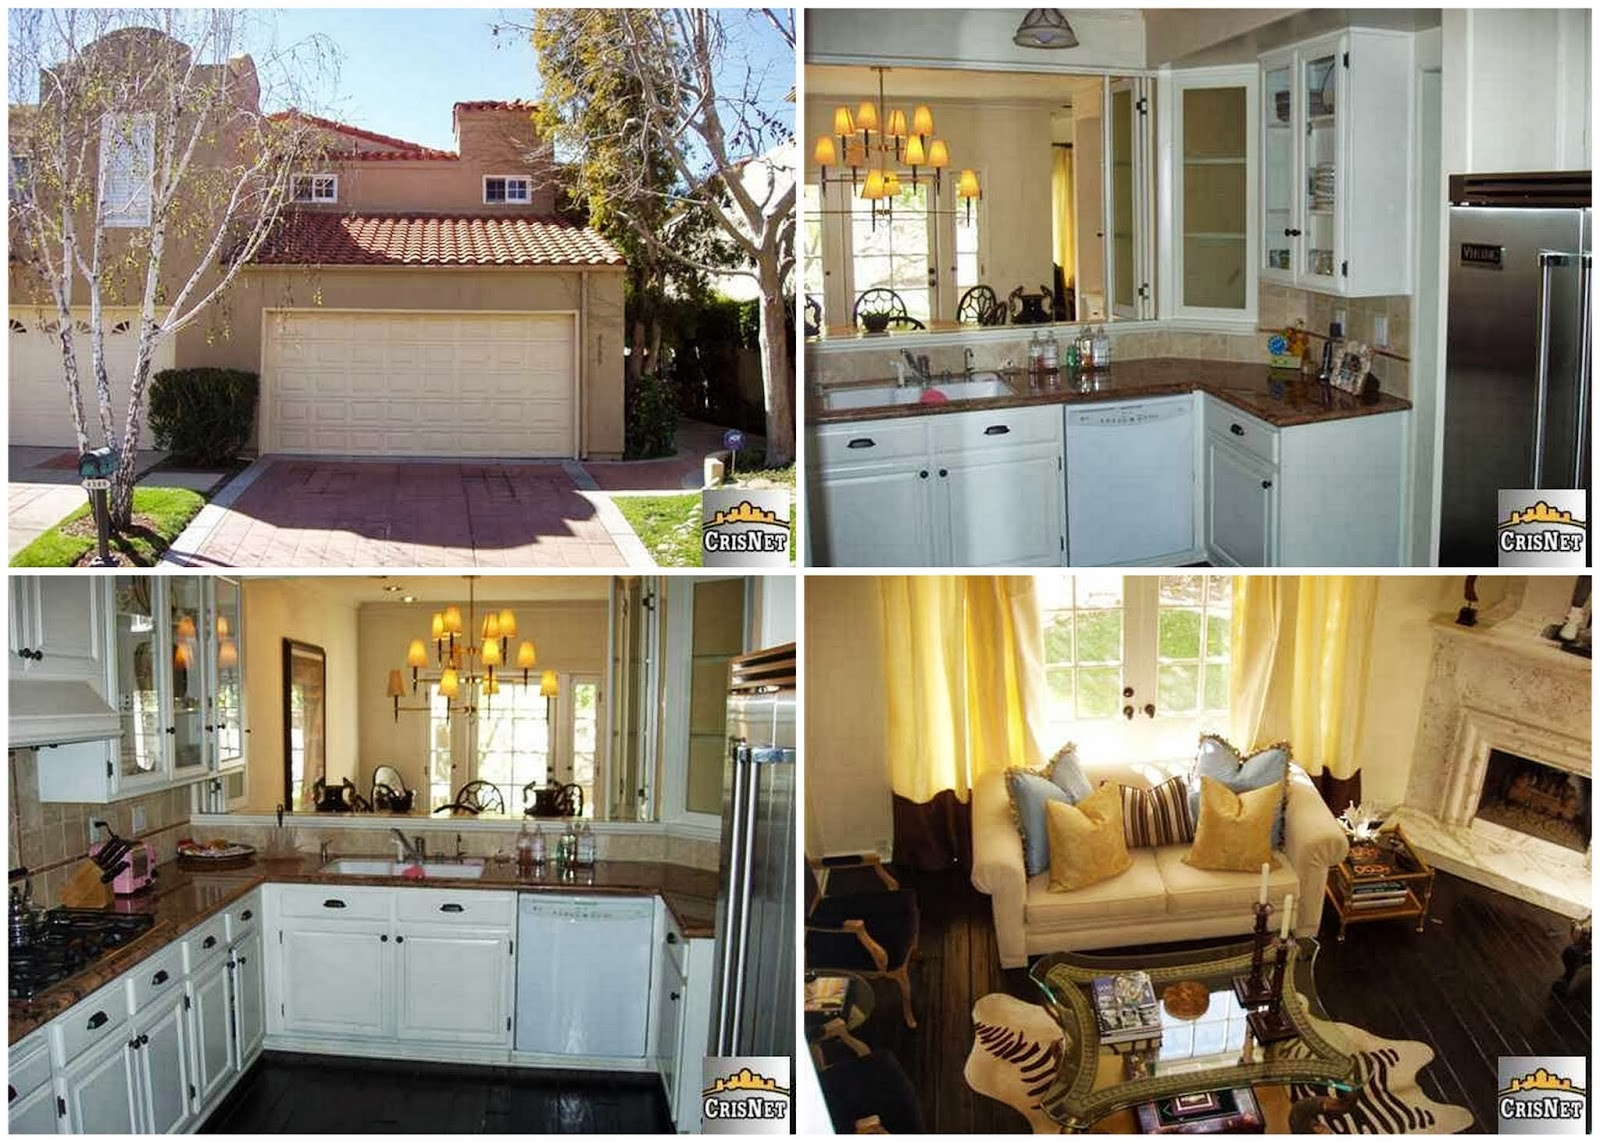 Images Courtesy Prudential California Realty